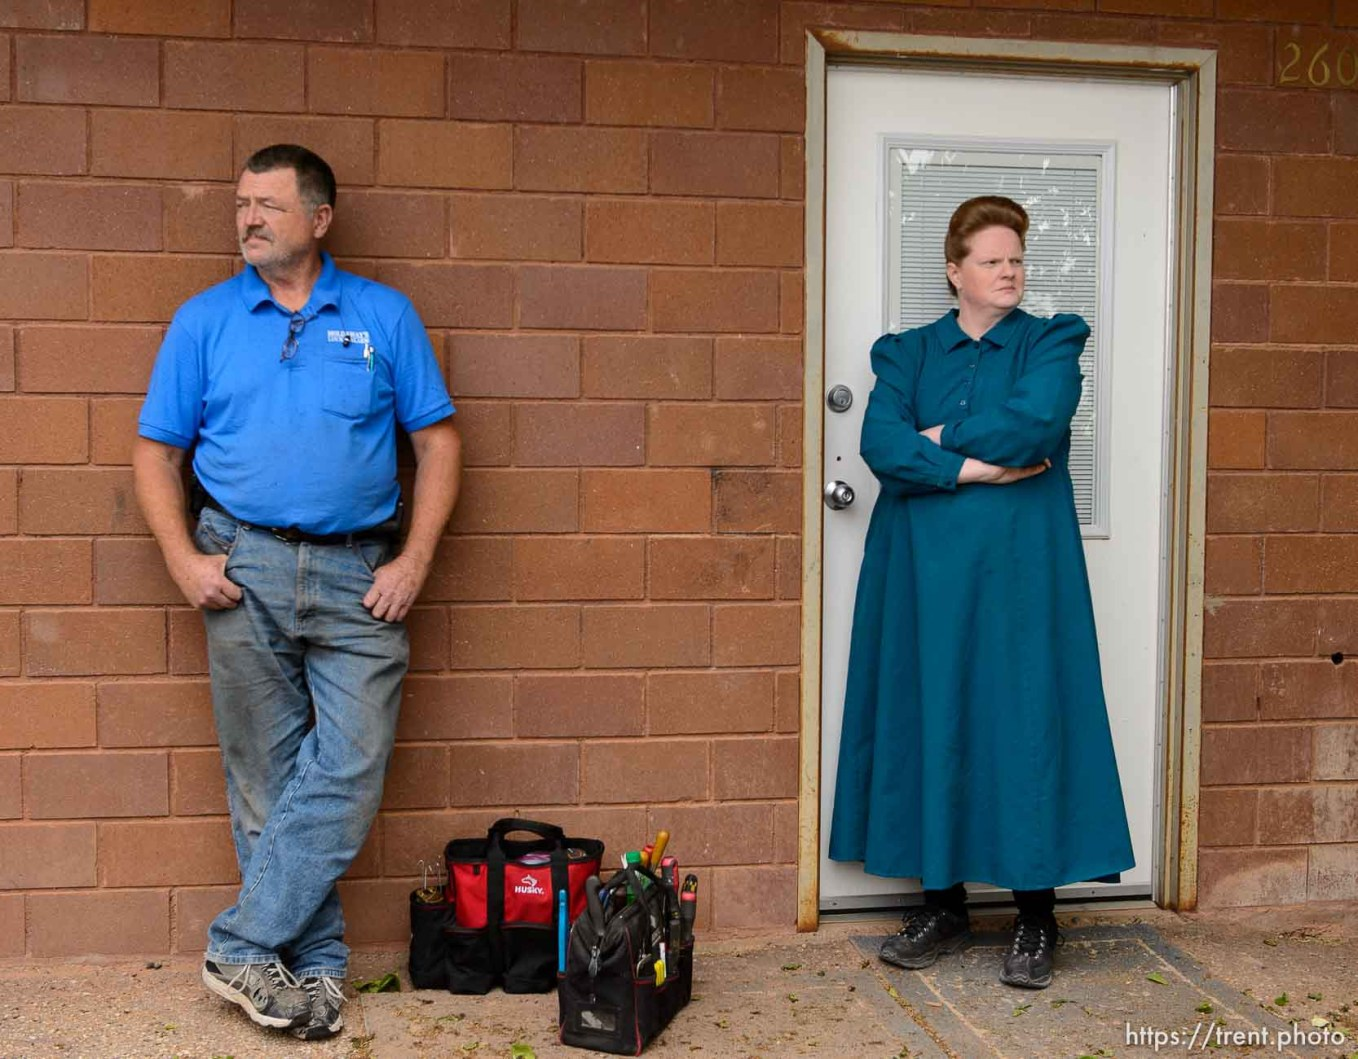 Trent Nelson   The Salt Lake Tribune Locksmith Kelvin Holdaway and FLDS member Julia Johnson stand outisde of her Colorado City, AZ, property awaiting the outcome of a confrontation over her eviction, Tuesday May 9, 2017. Johnson was given more time to stay on the property before her eviction.